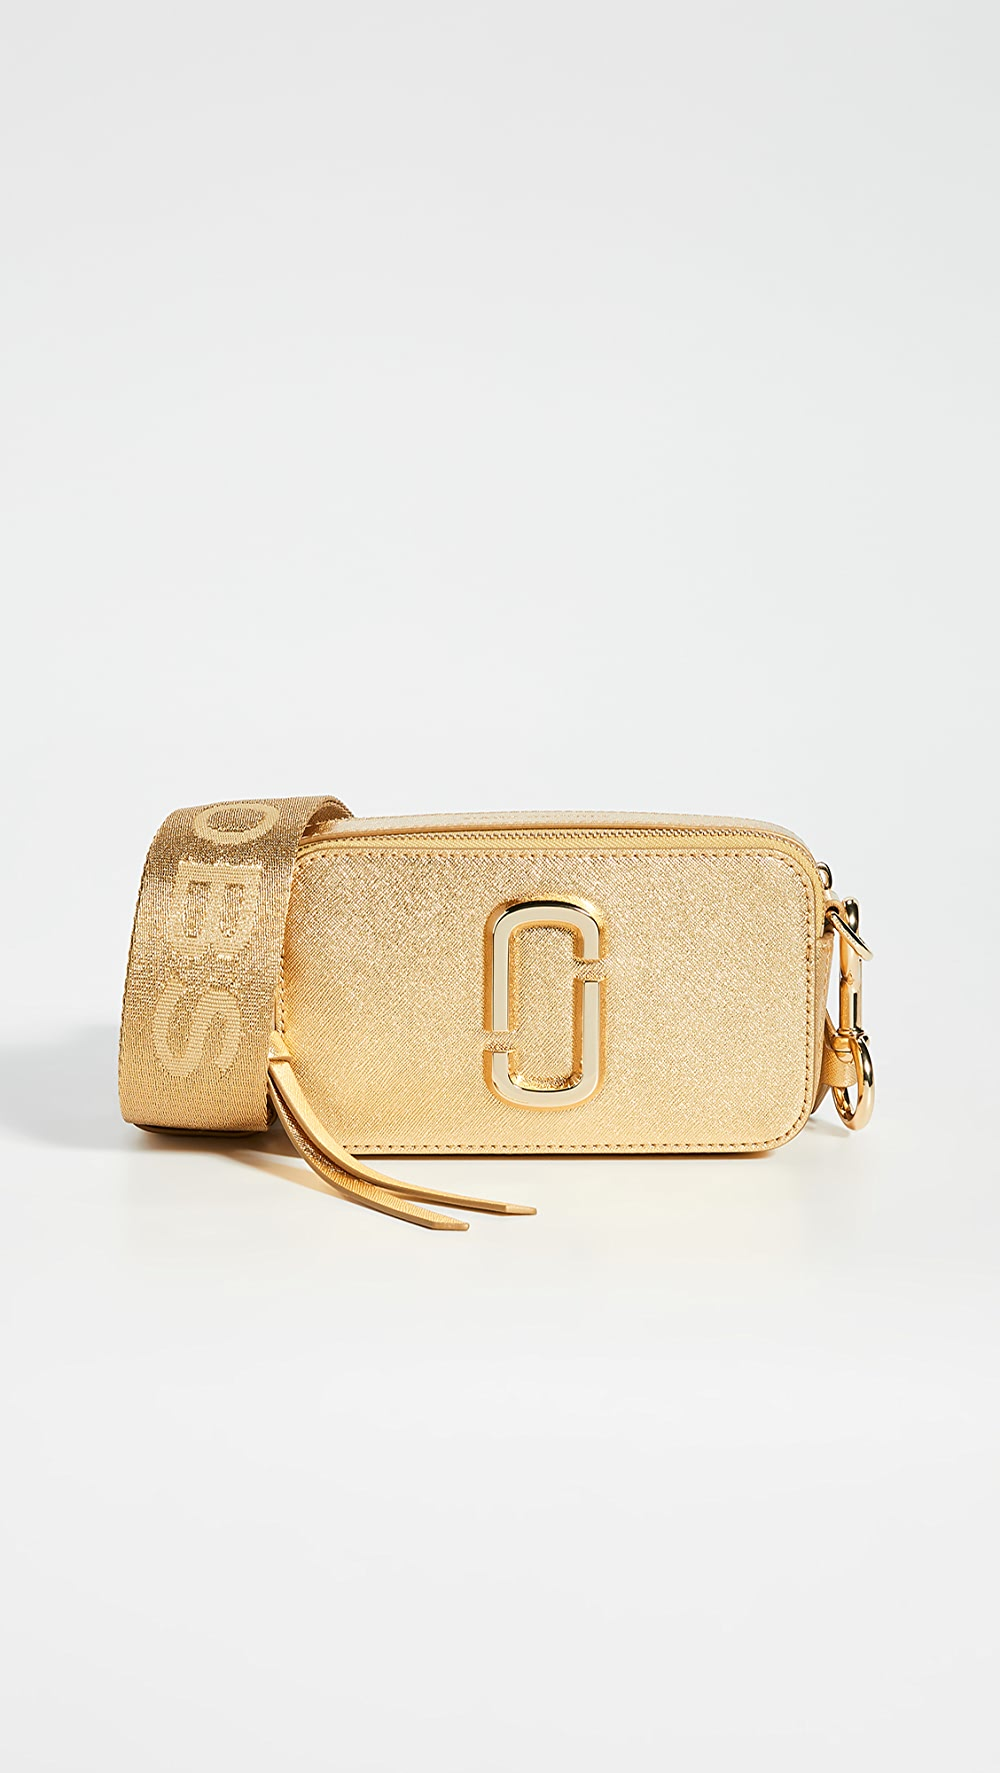 Delicious The Marc Jacobs - Snapshot Dtm Metallic Camera Bag Fashionable Patterns